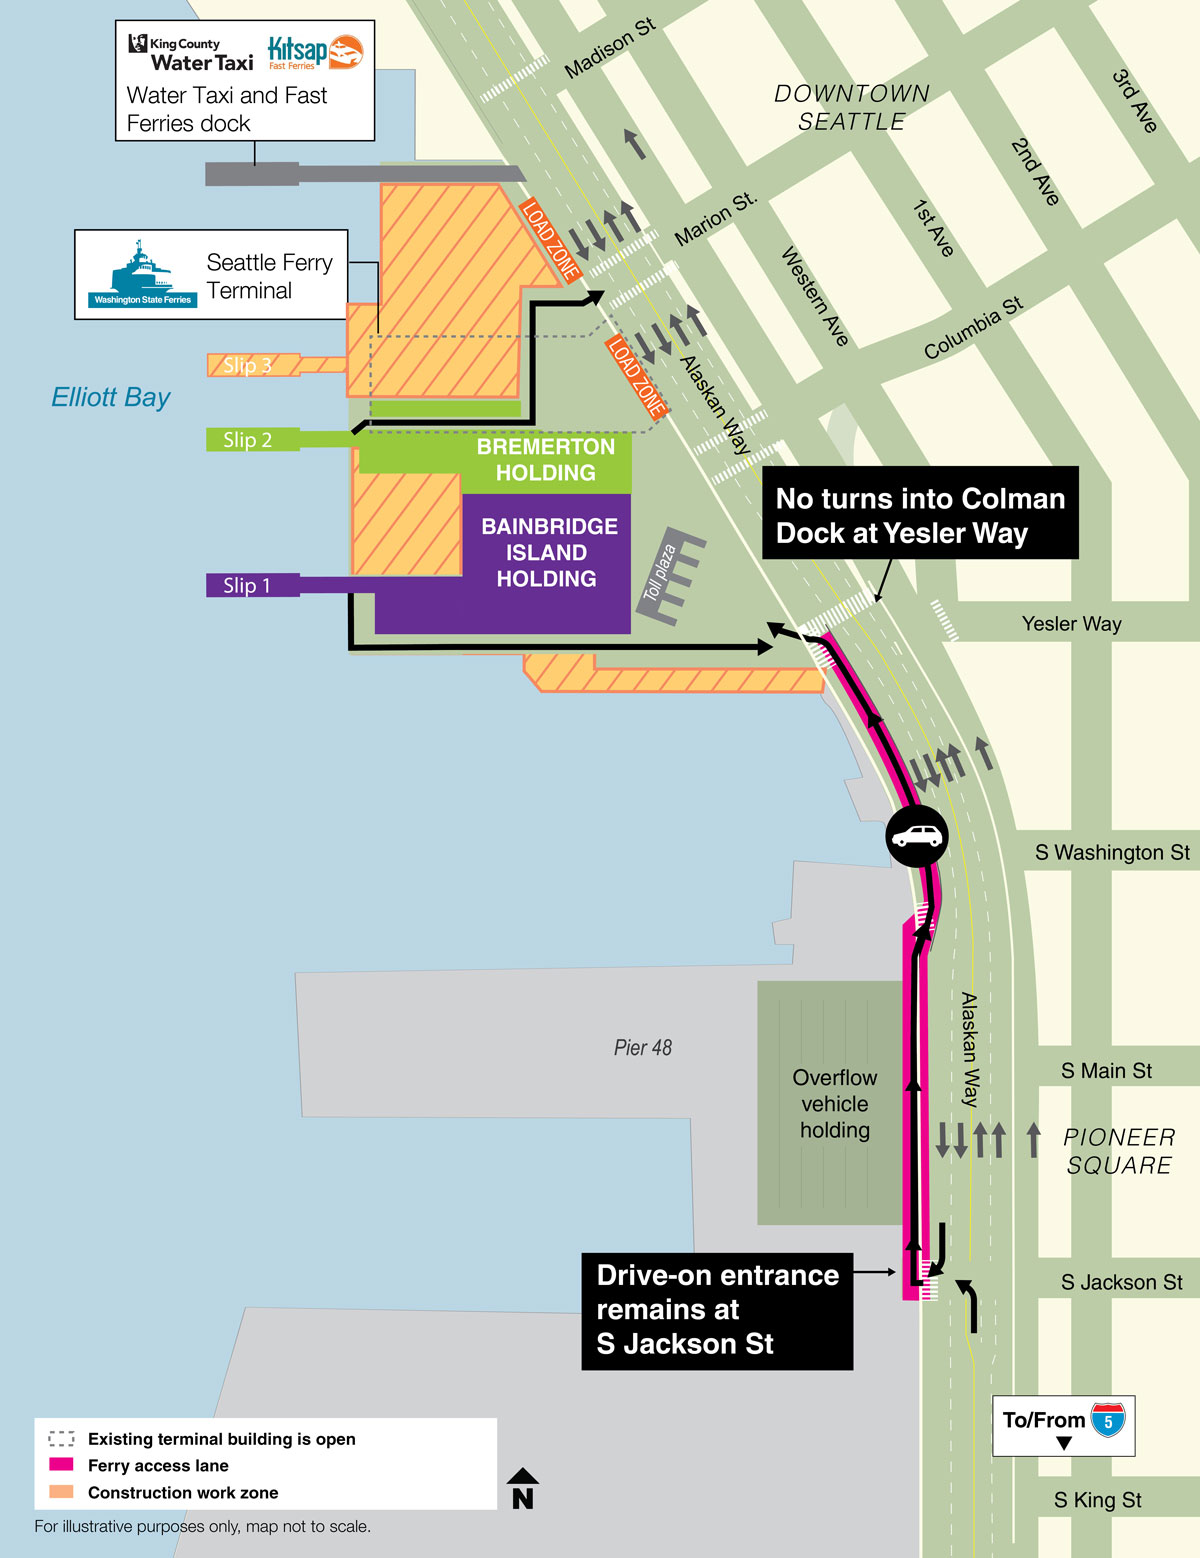 Seattle Waterfront Construction Major Construction Projects 2018